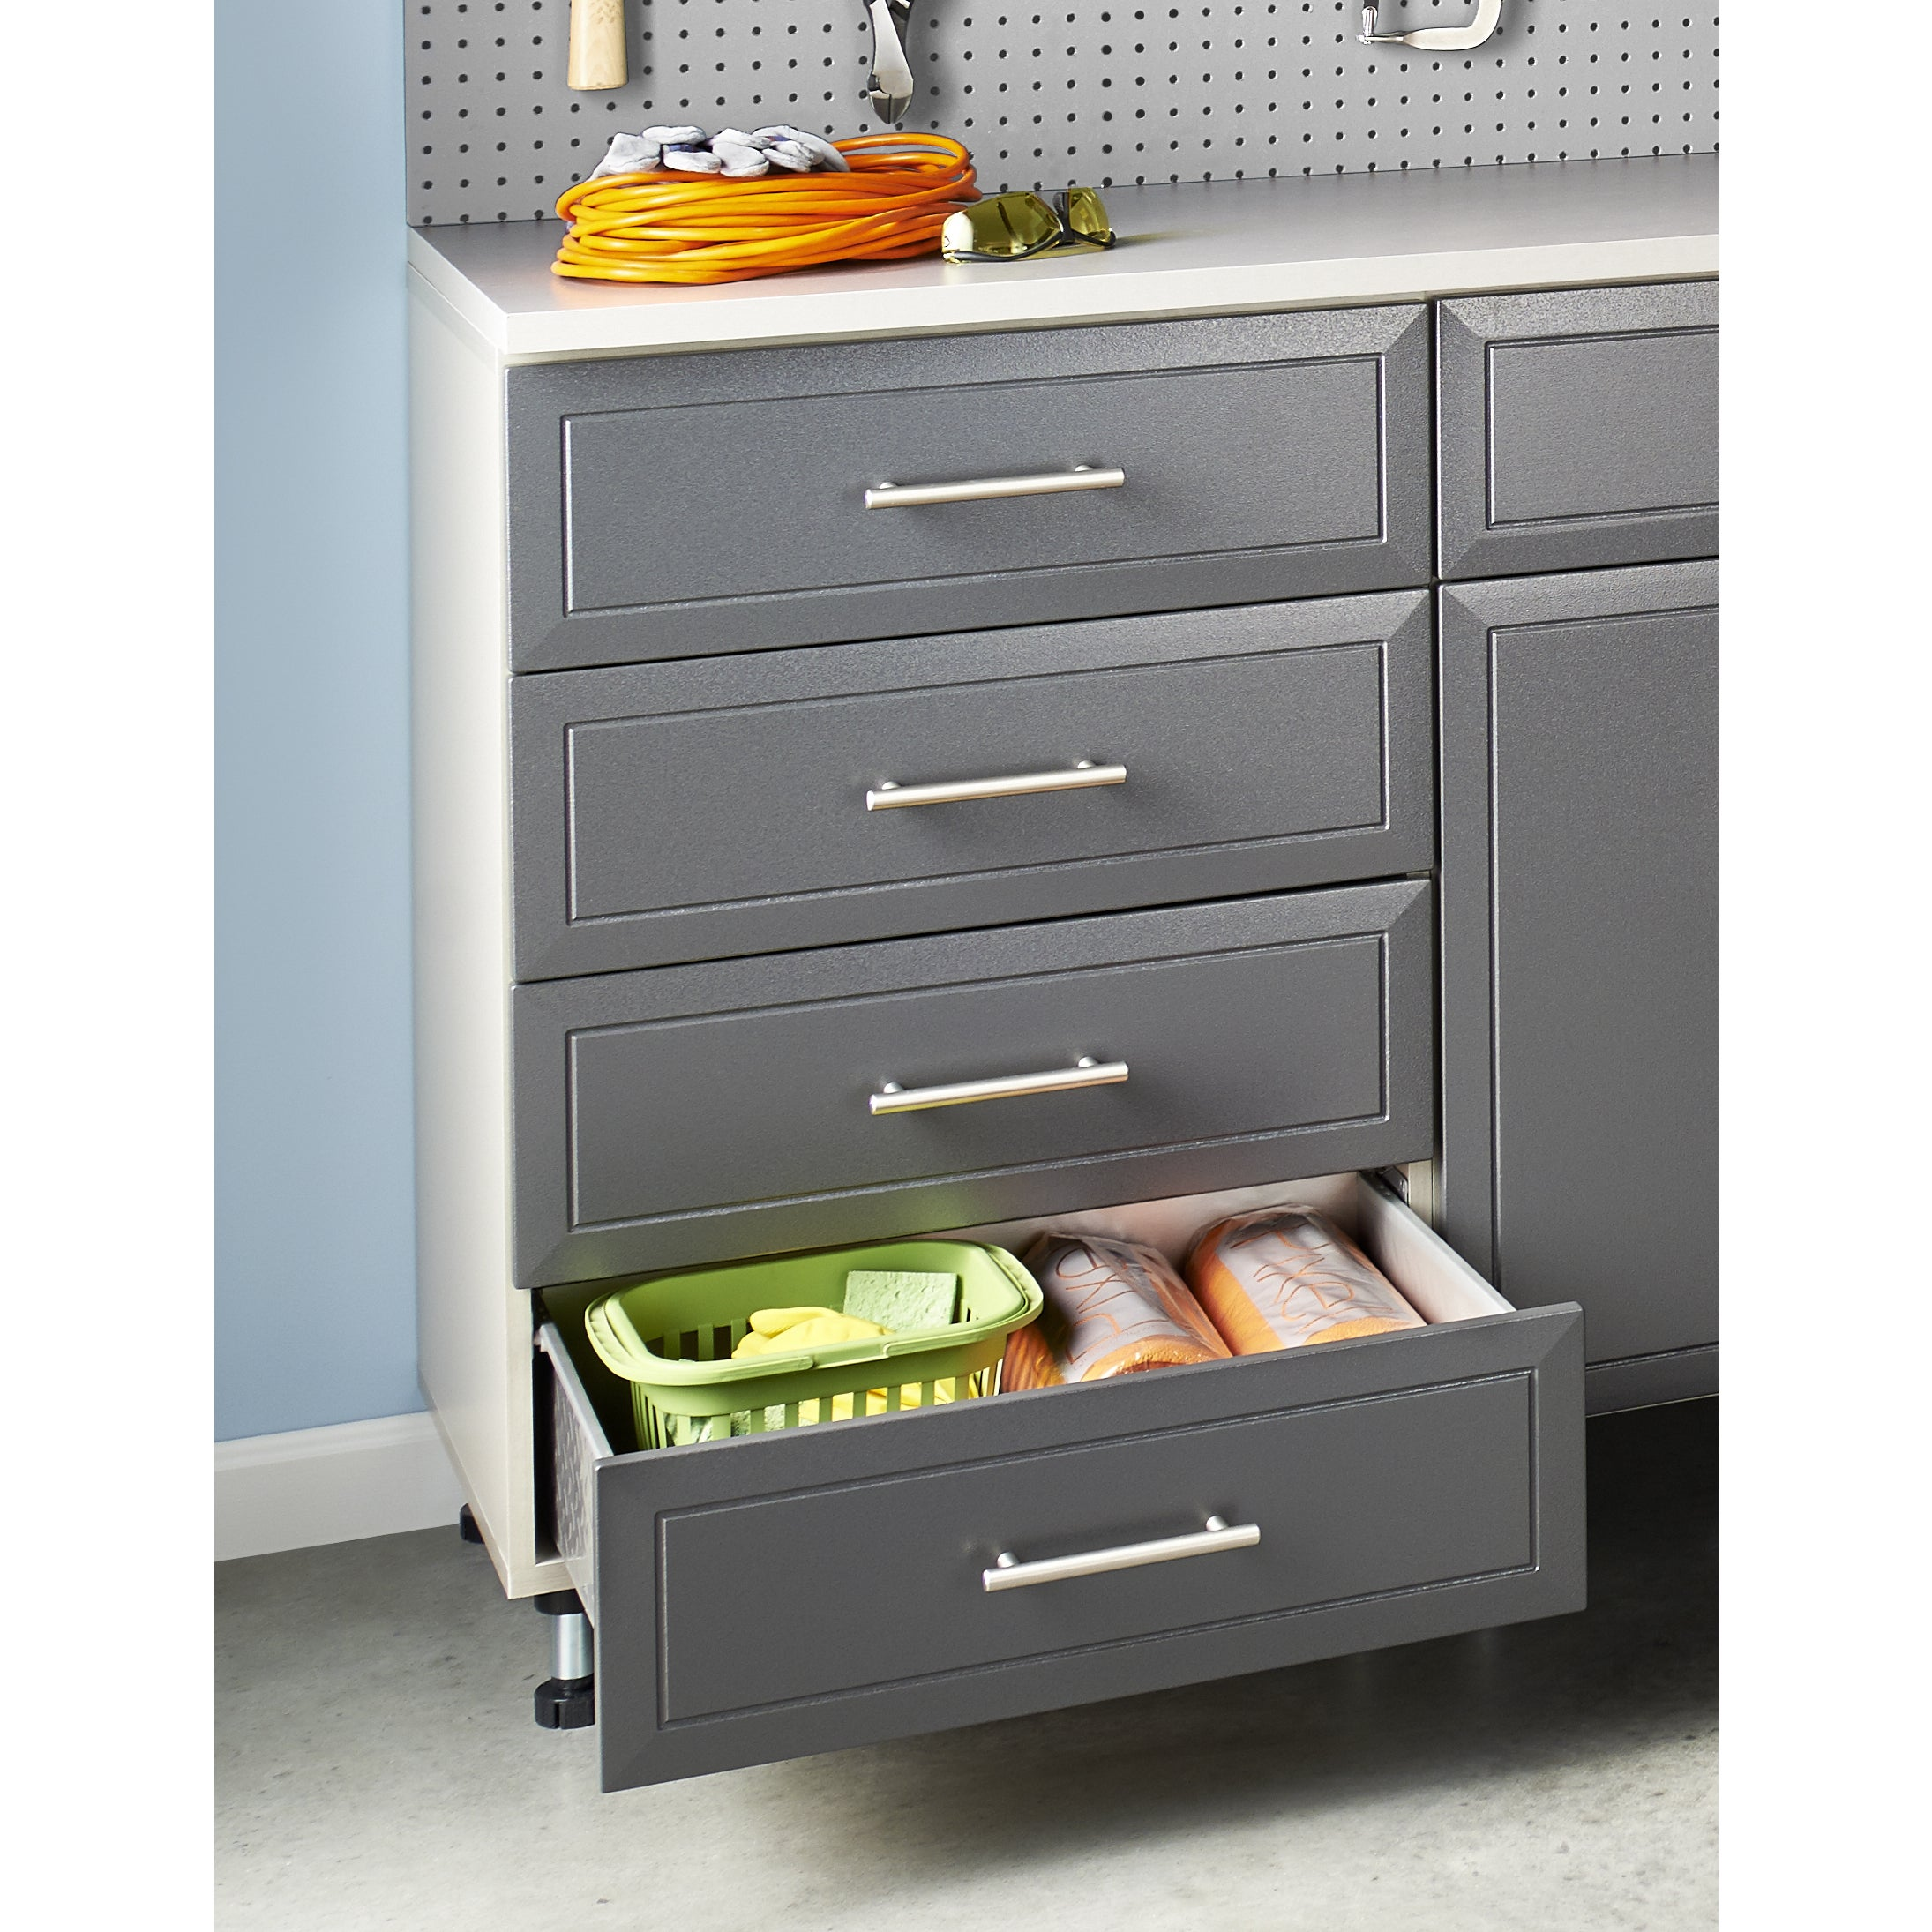 diy maid tower wood closetmaid storage closet studentsserve drawers org with